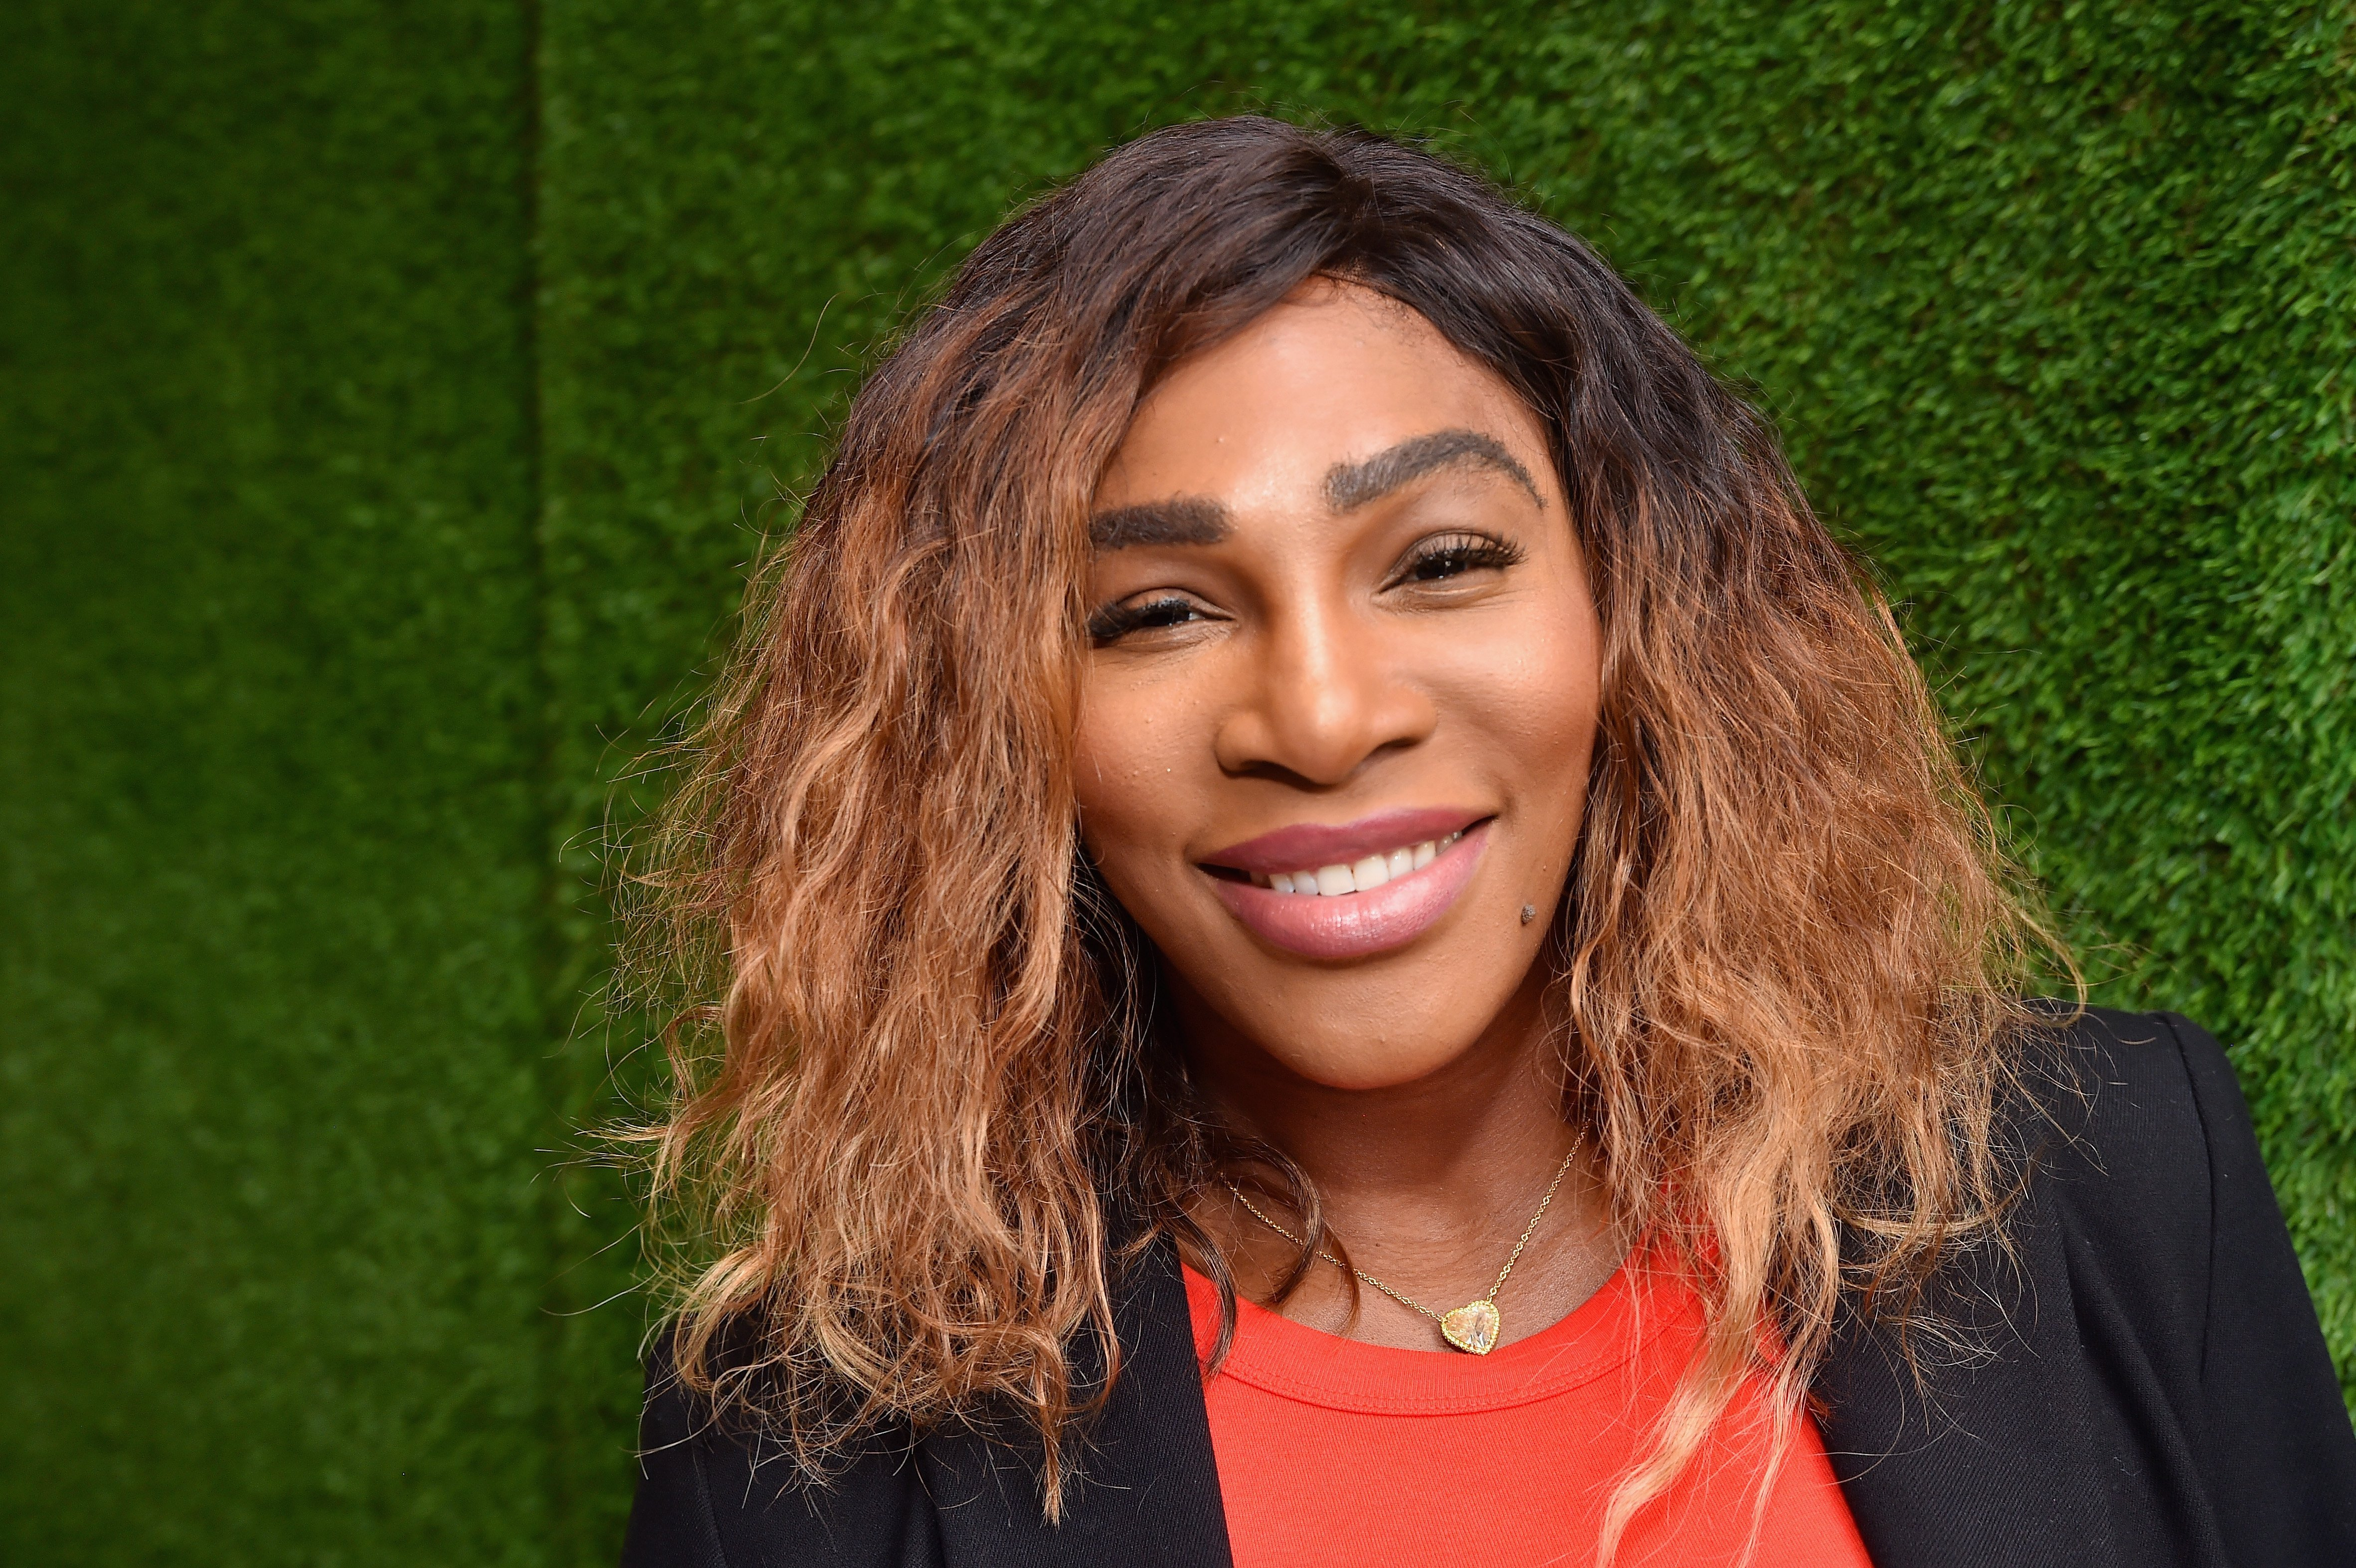 Serena Williams attends the BoF West summit at Westfield Century City on April 26, 2019 in California| Photo: Getty Images